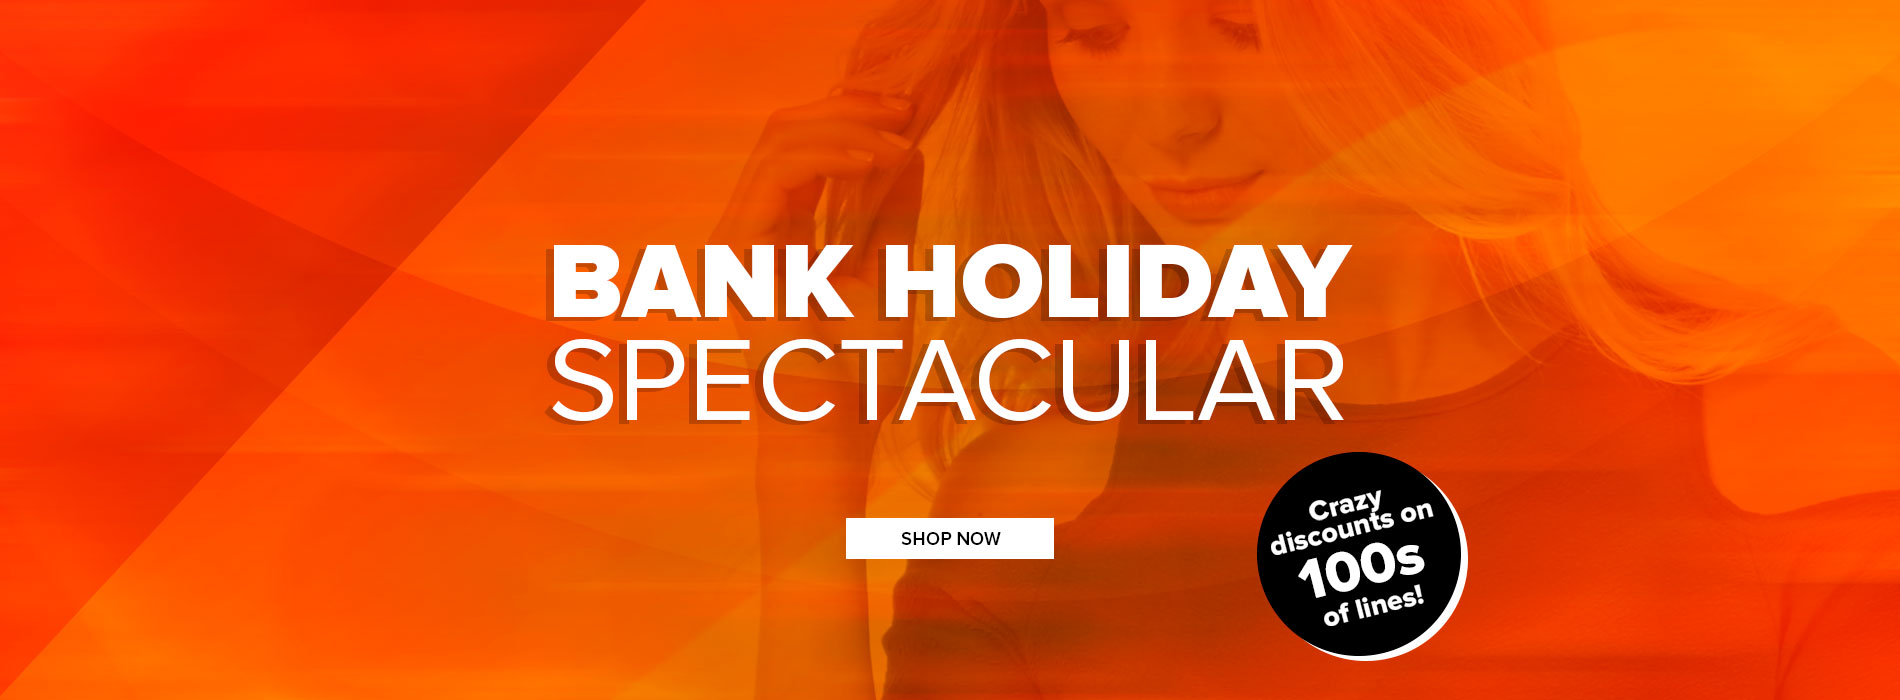 Select Fashion: Bank Holiday Spectacular with crazy discounts on 100s of new-in season's lines